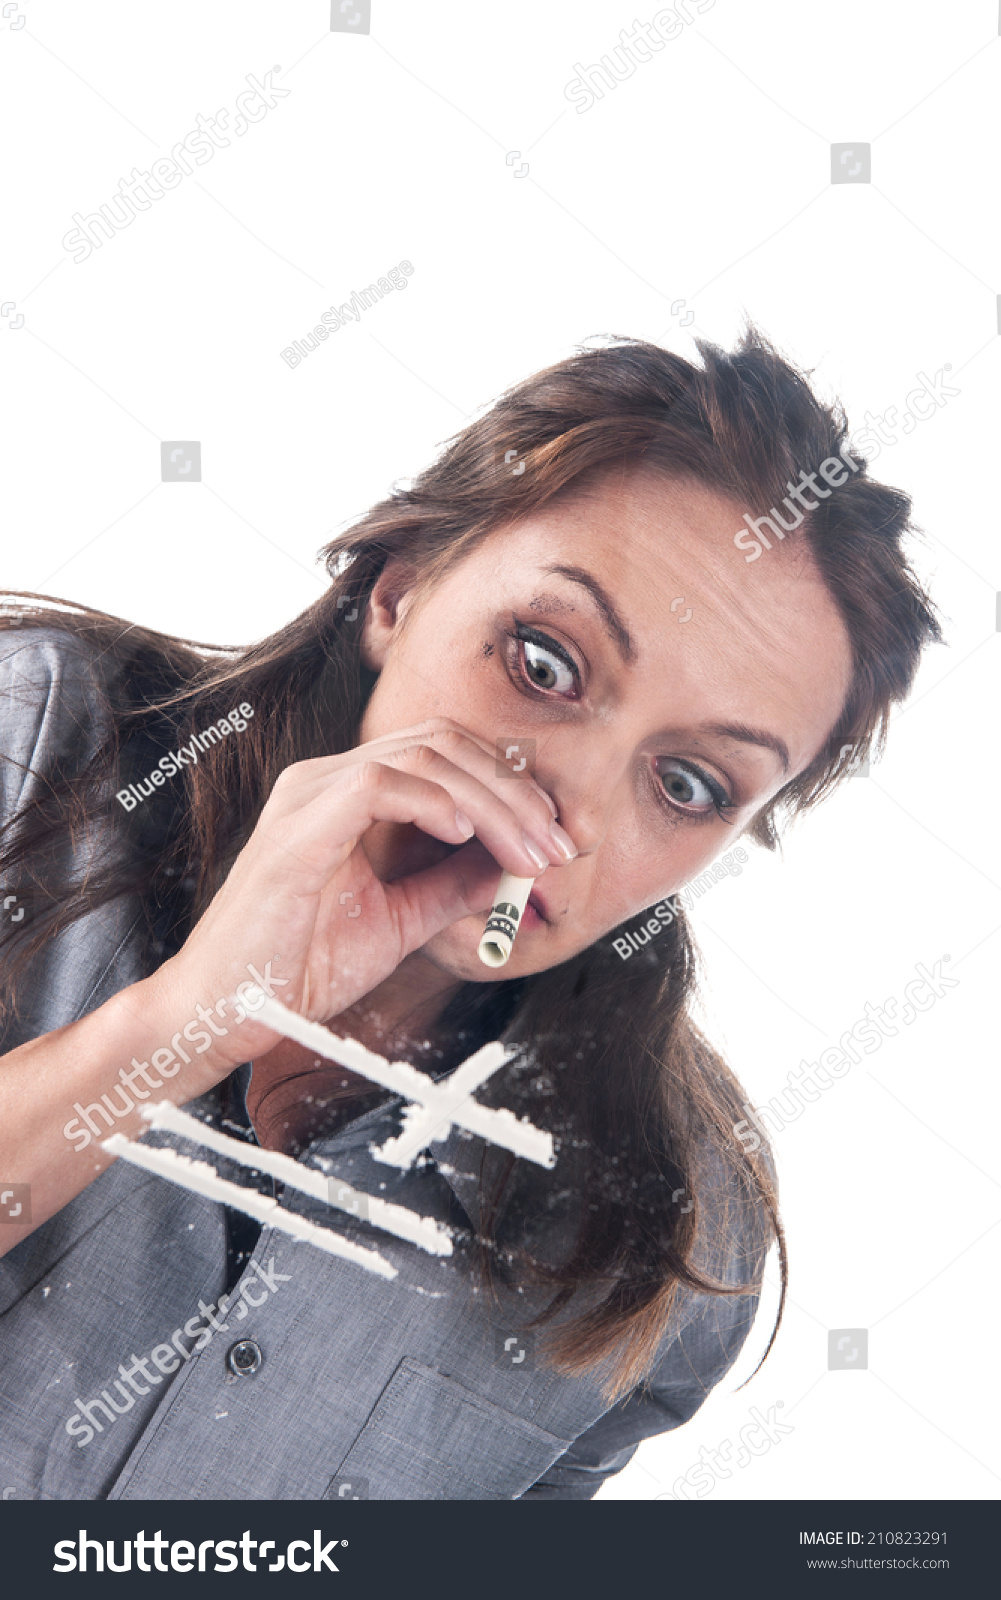 With girl snorting coke drug consider